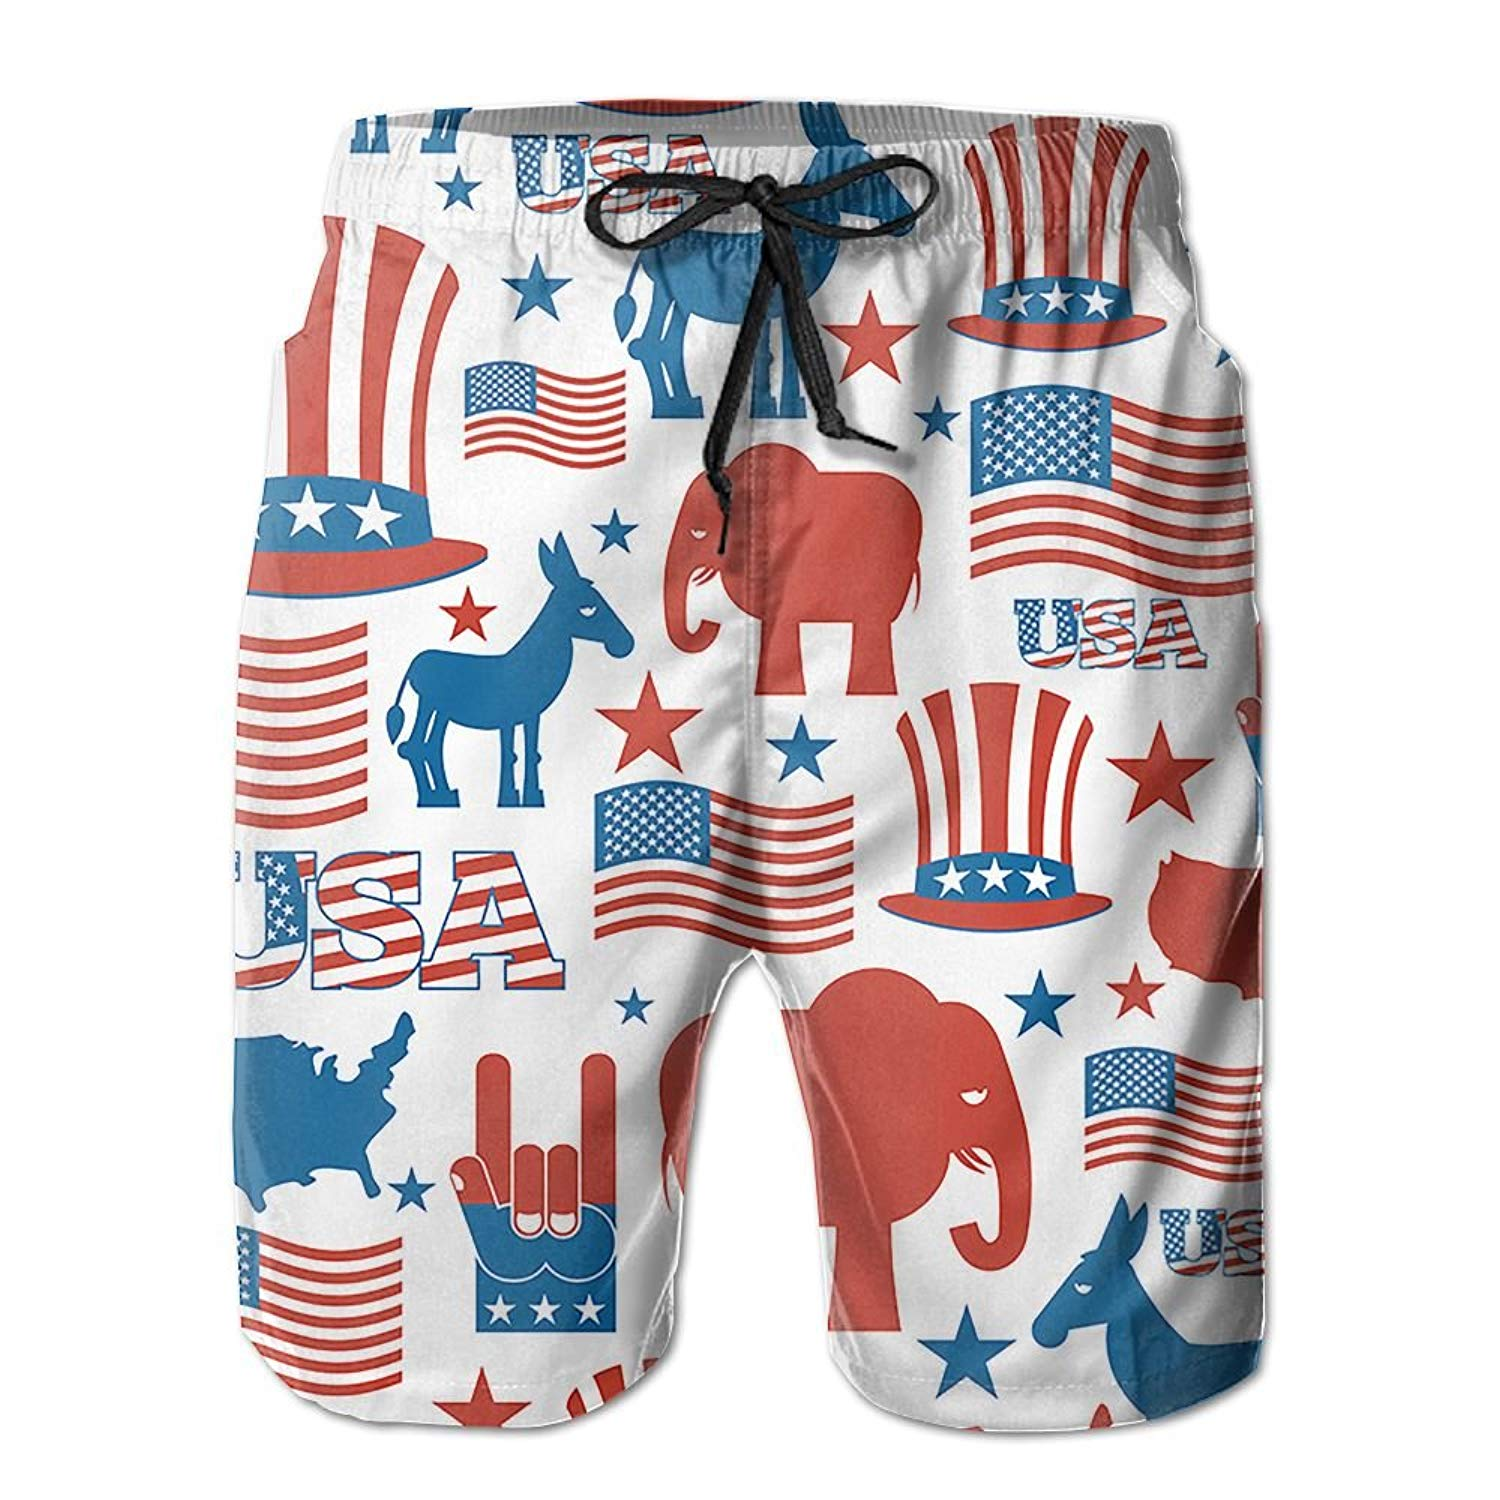 37c96169b3 Get Quotations · US Flag Elephant Horse Beach Pants Men Swimming Trunks  Quick-Dry Board Trunks with Lining